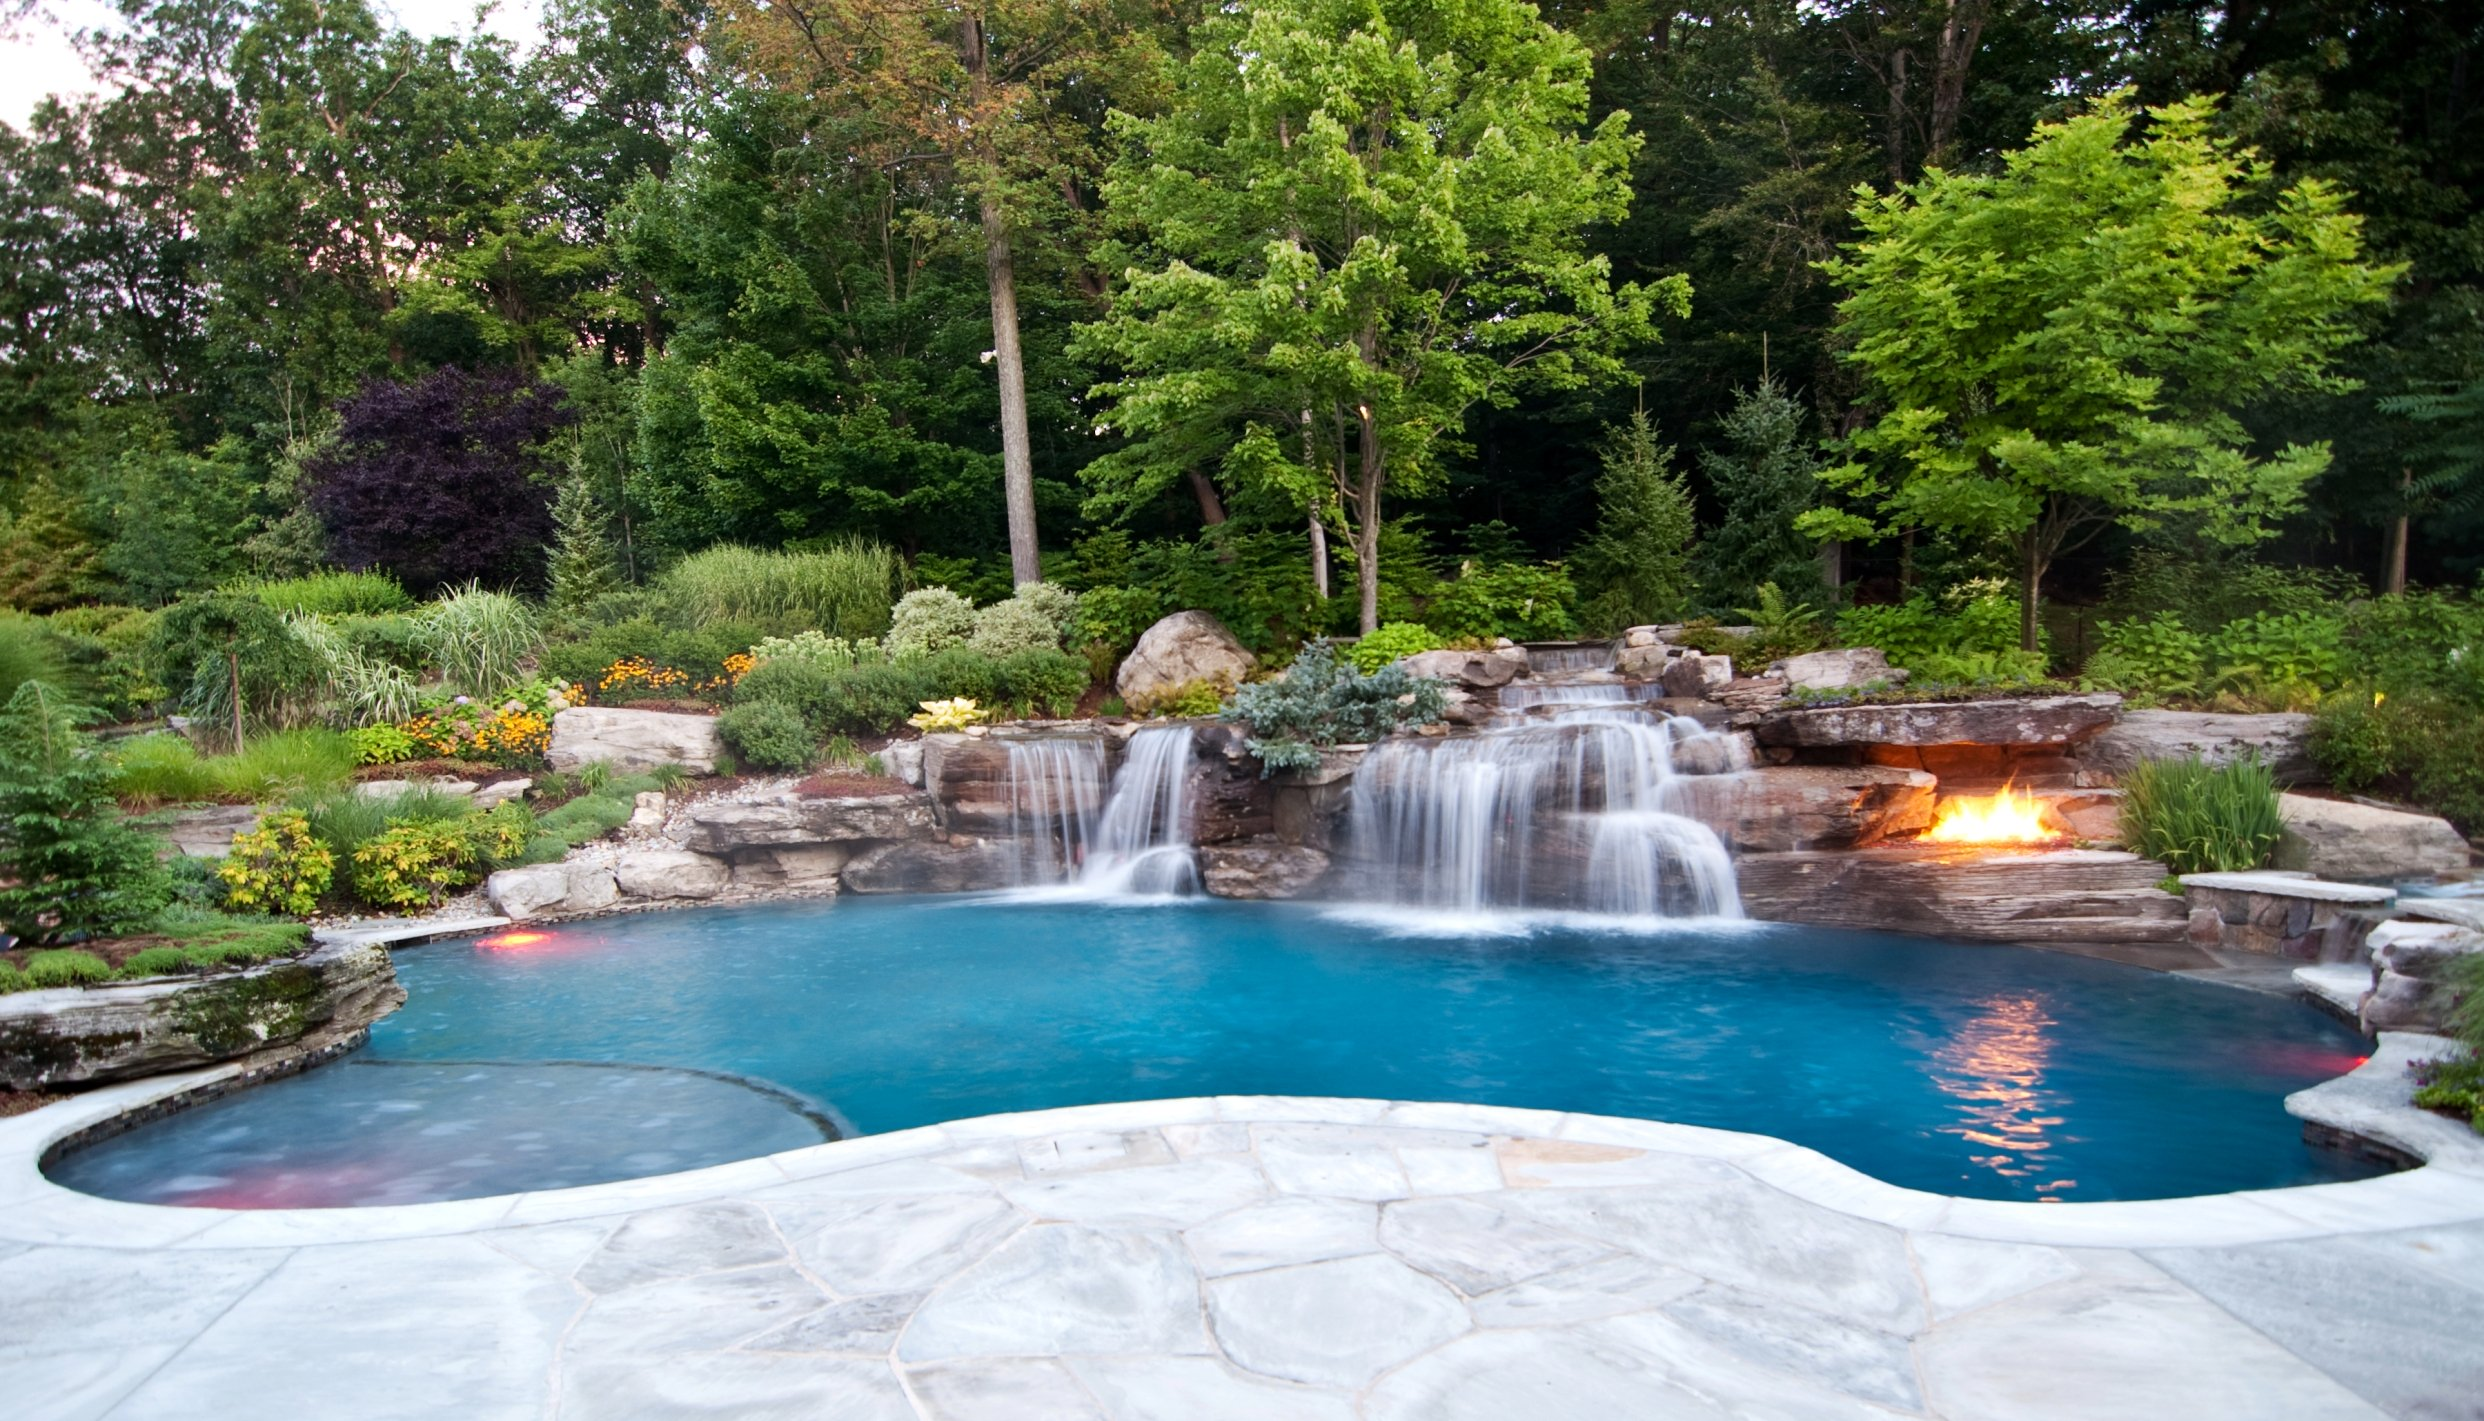 New pool construction northern virginia maryland and for Pool design ideas